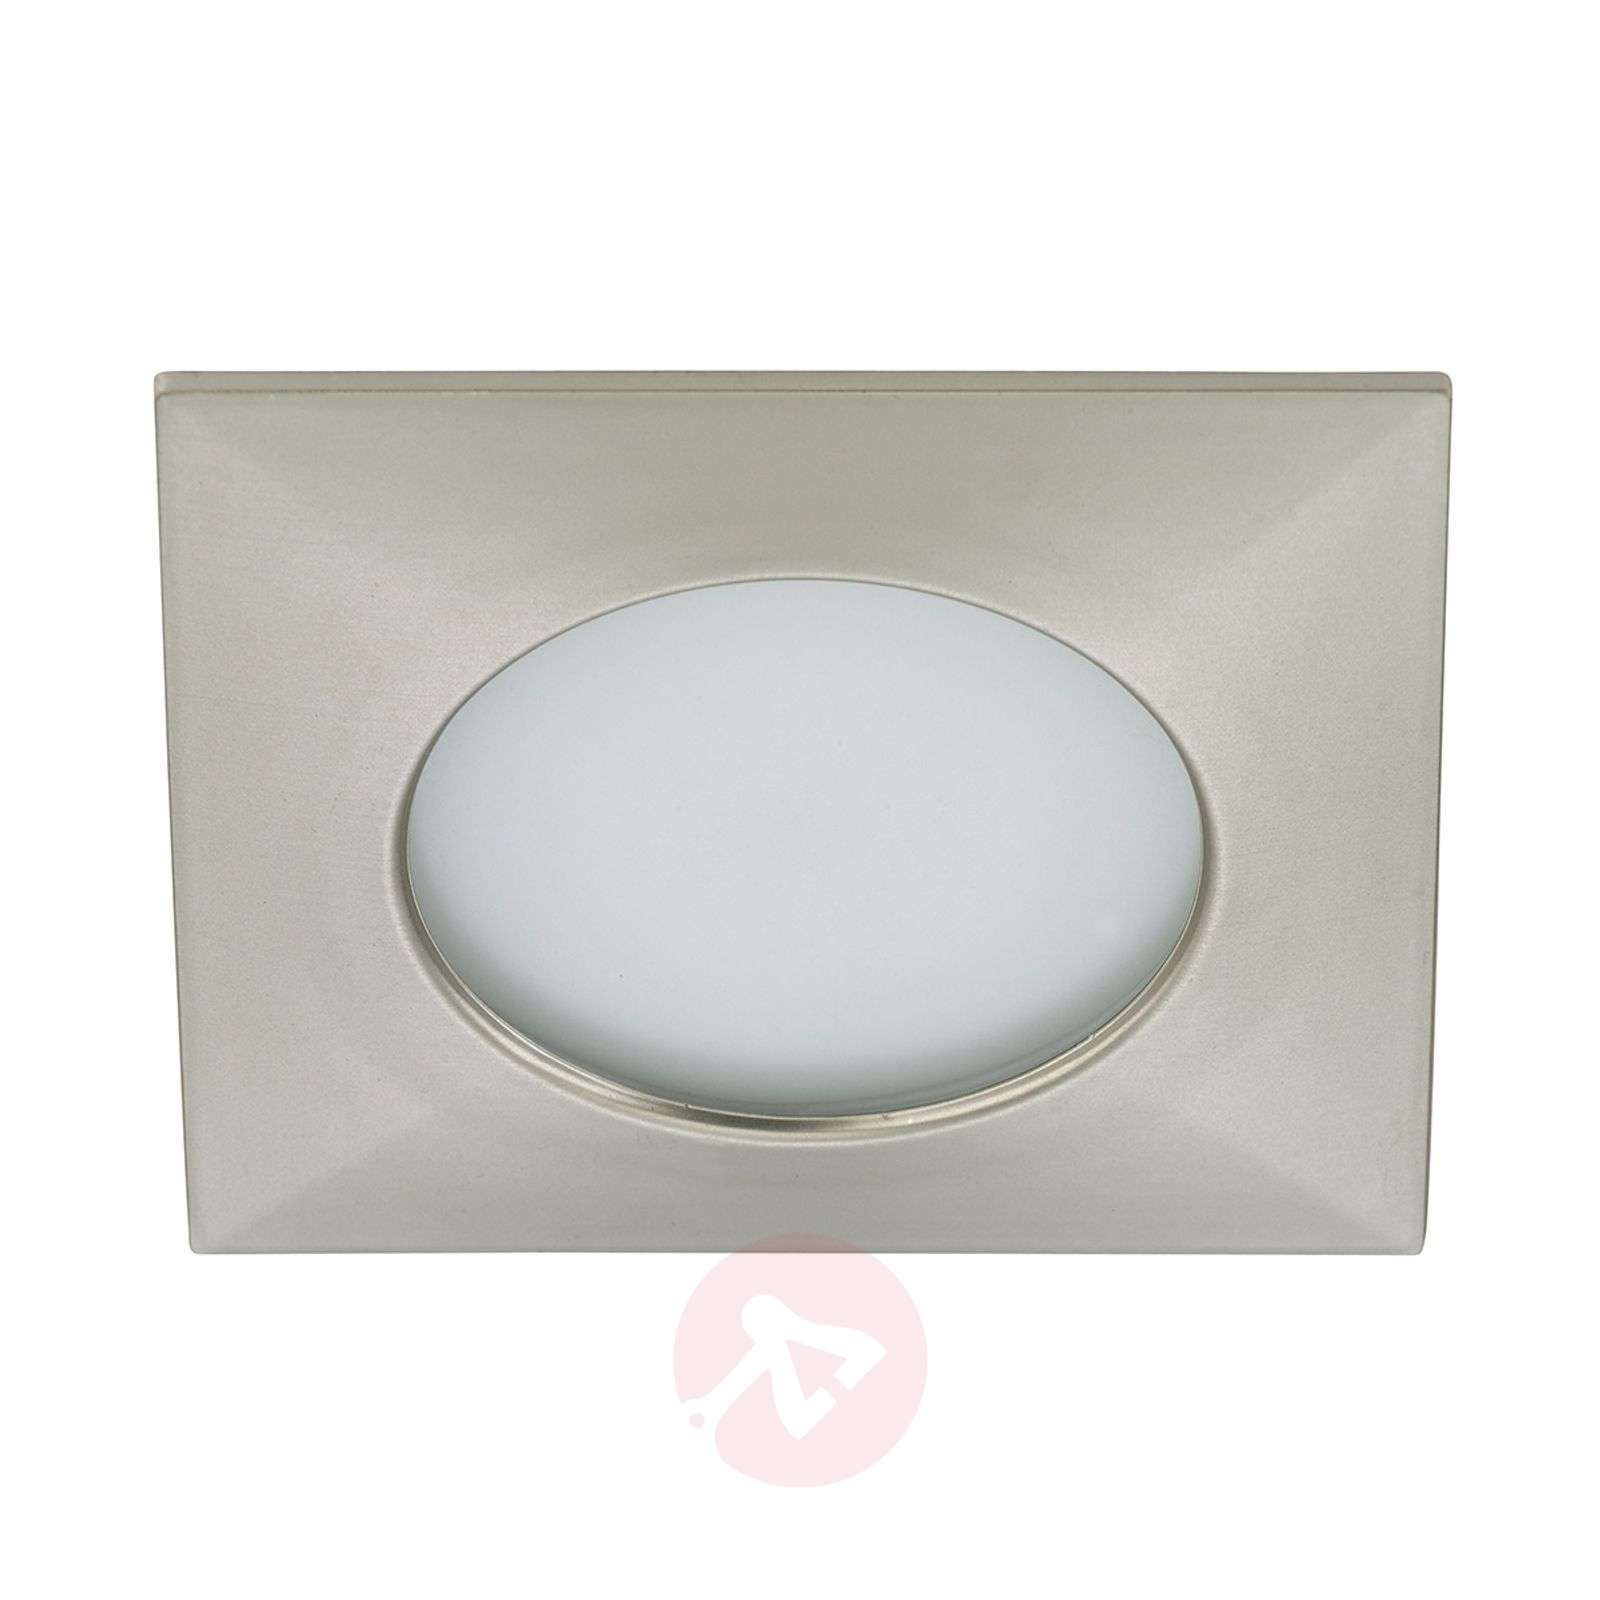 Spot encastré LED blanc chaud Paul en nickel mat-1510278-01